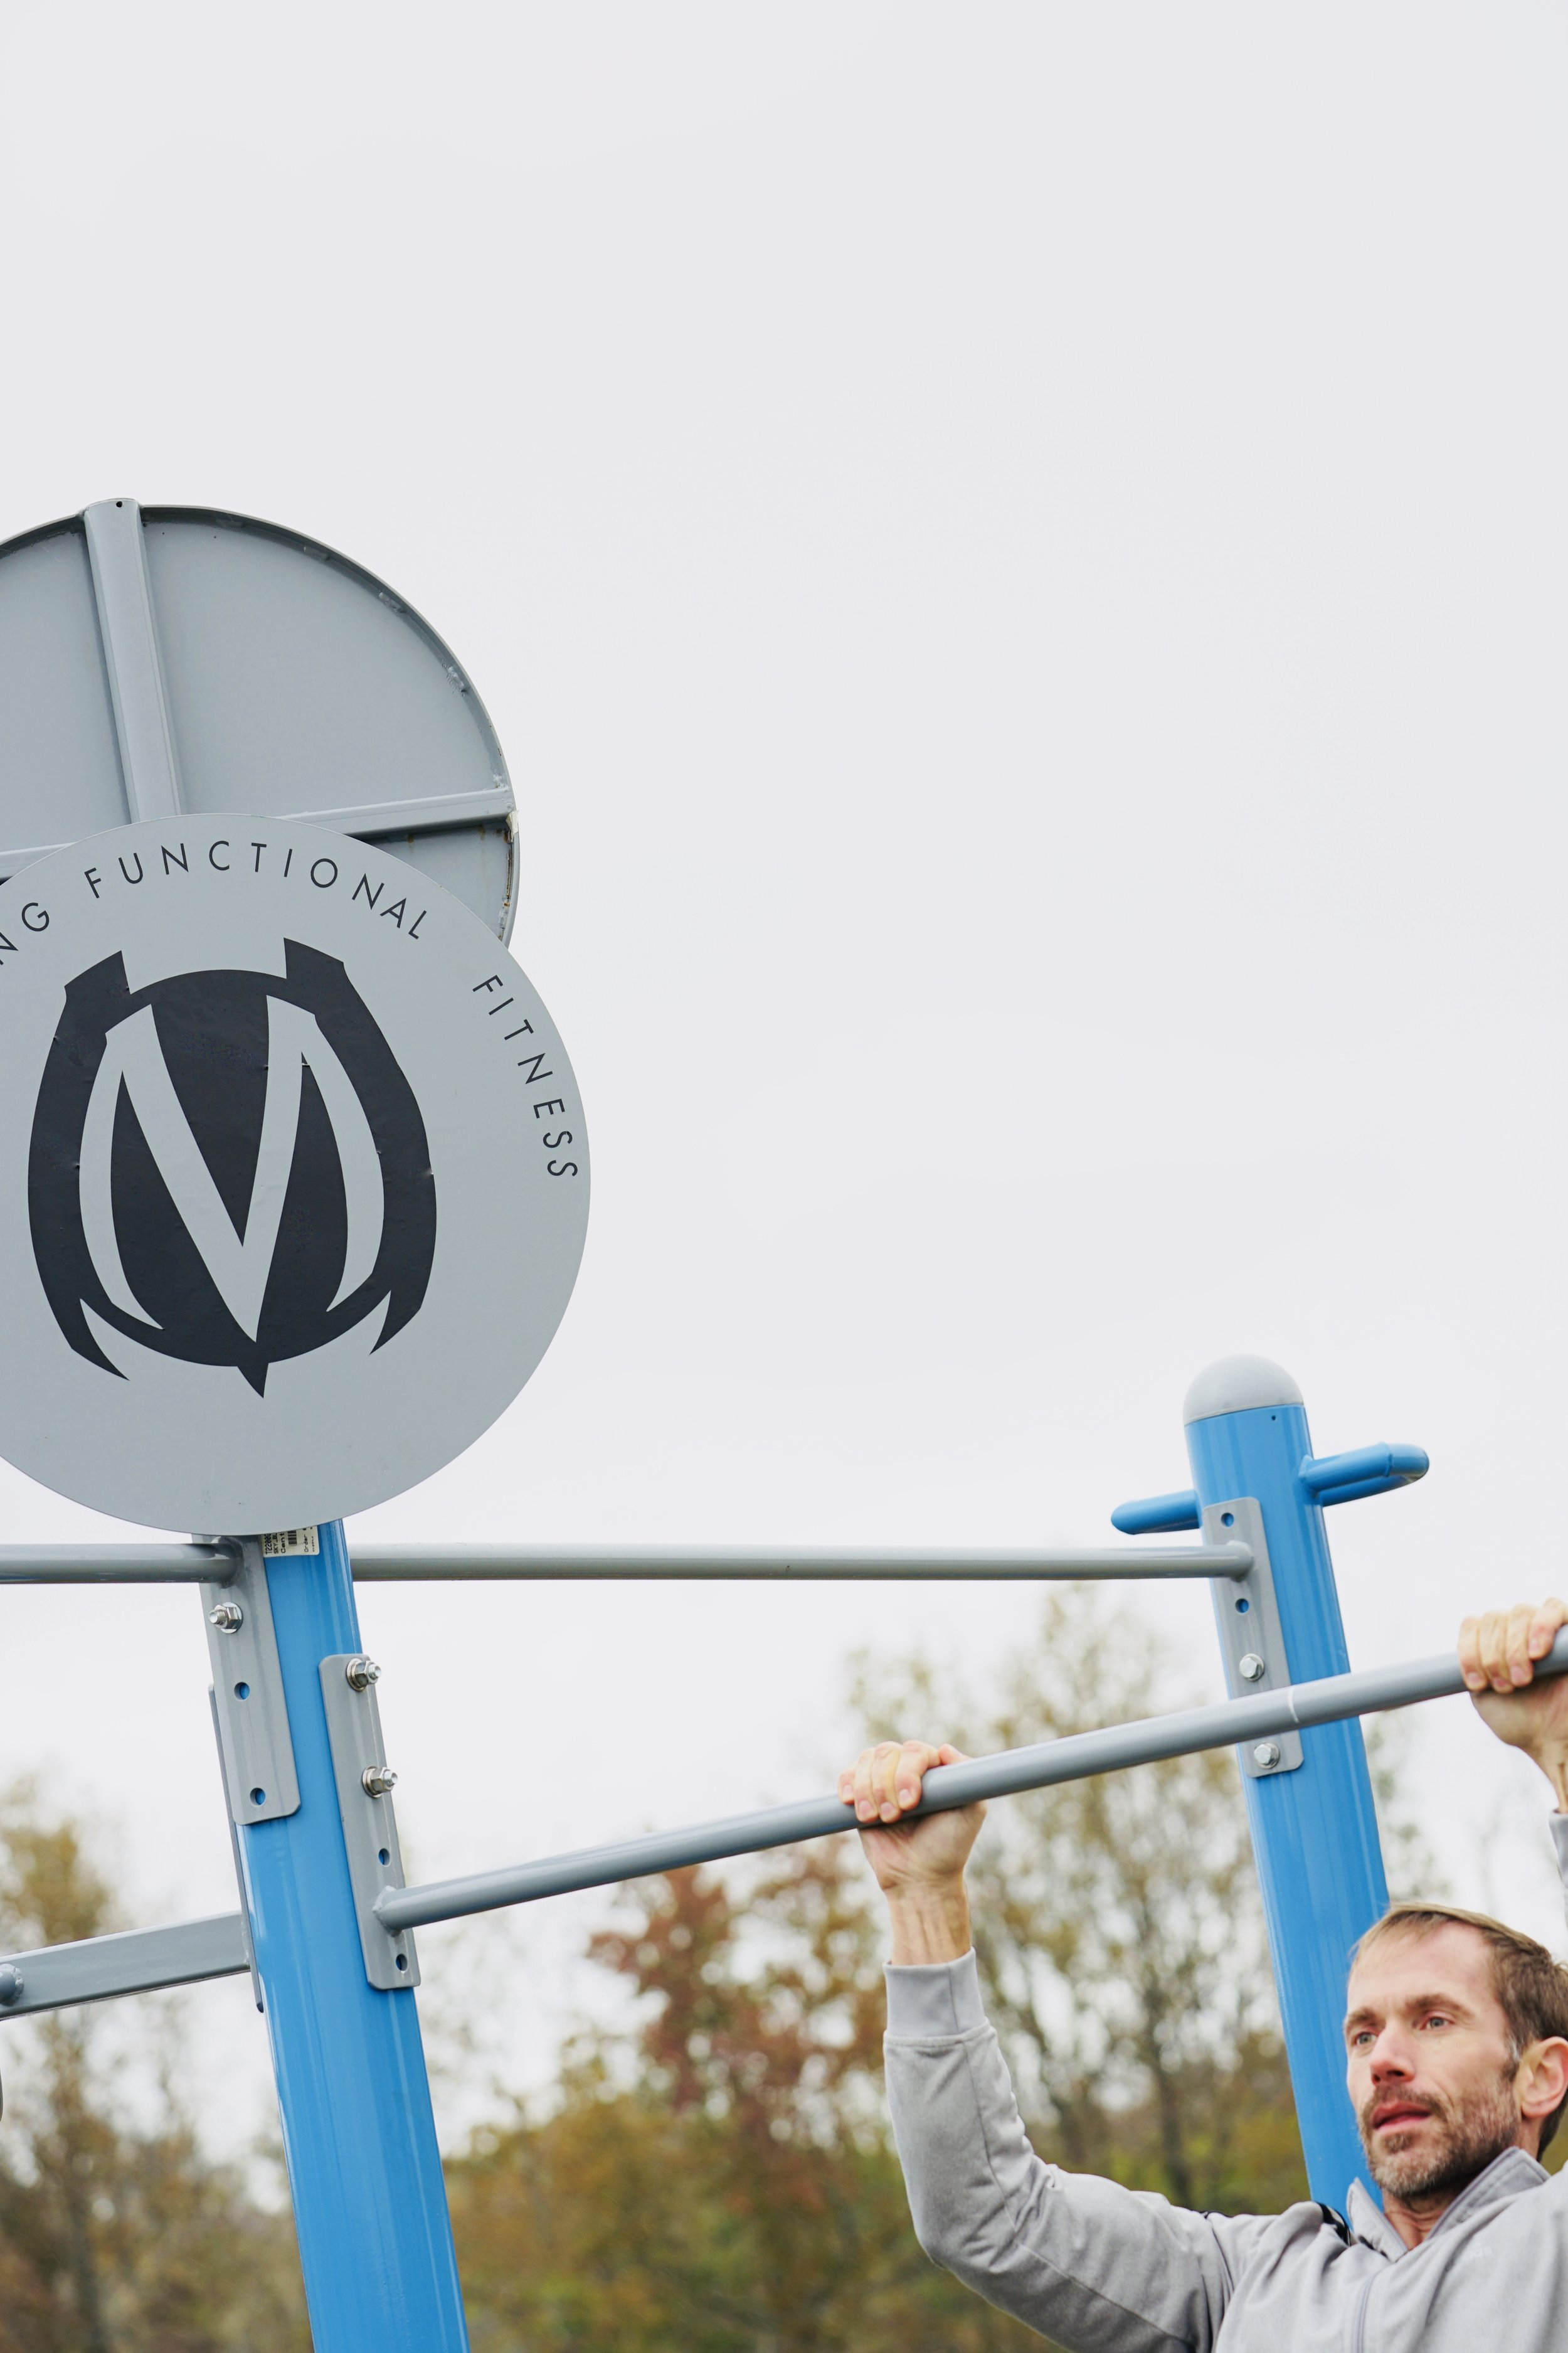 Outdoor Pull-up bar fitness equipment